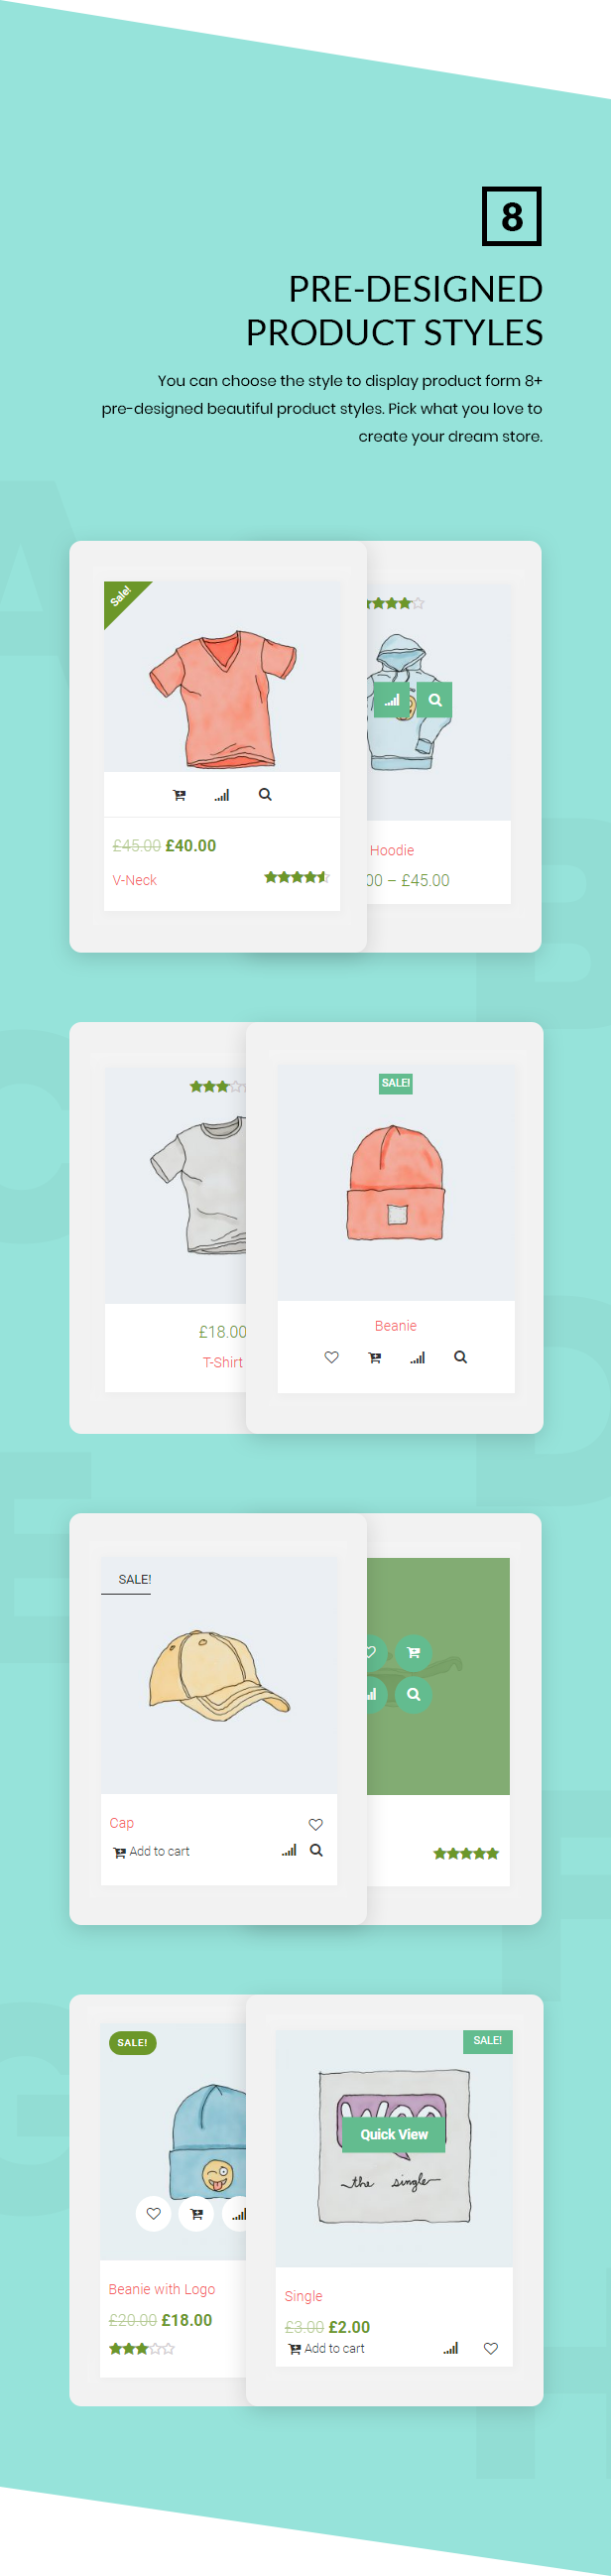 Noo Products Layouts - WooCommerce Addon for Elementor Page Builder - 4